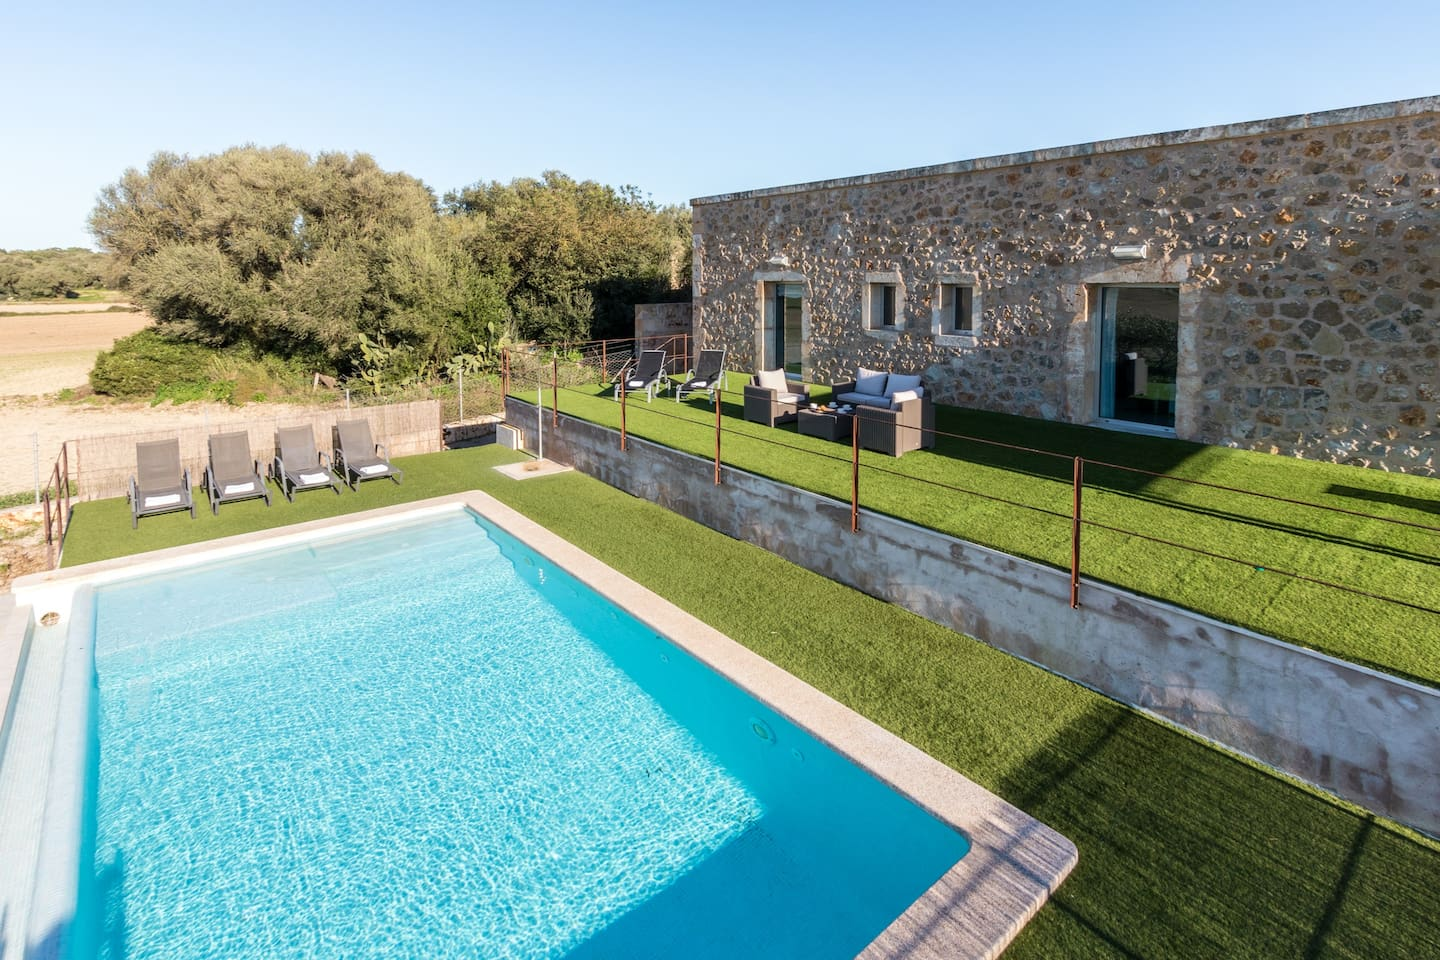 Villa, terrace and pool